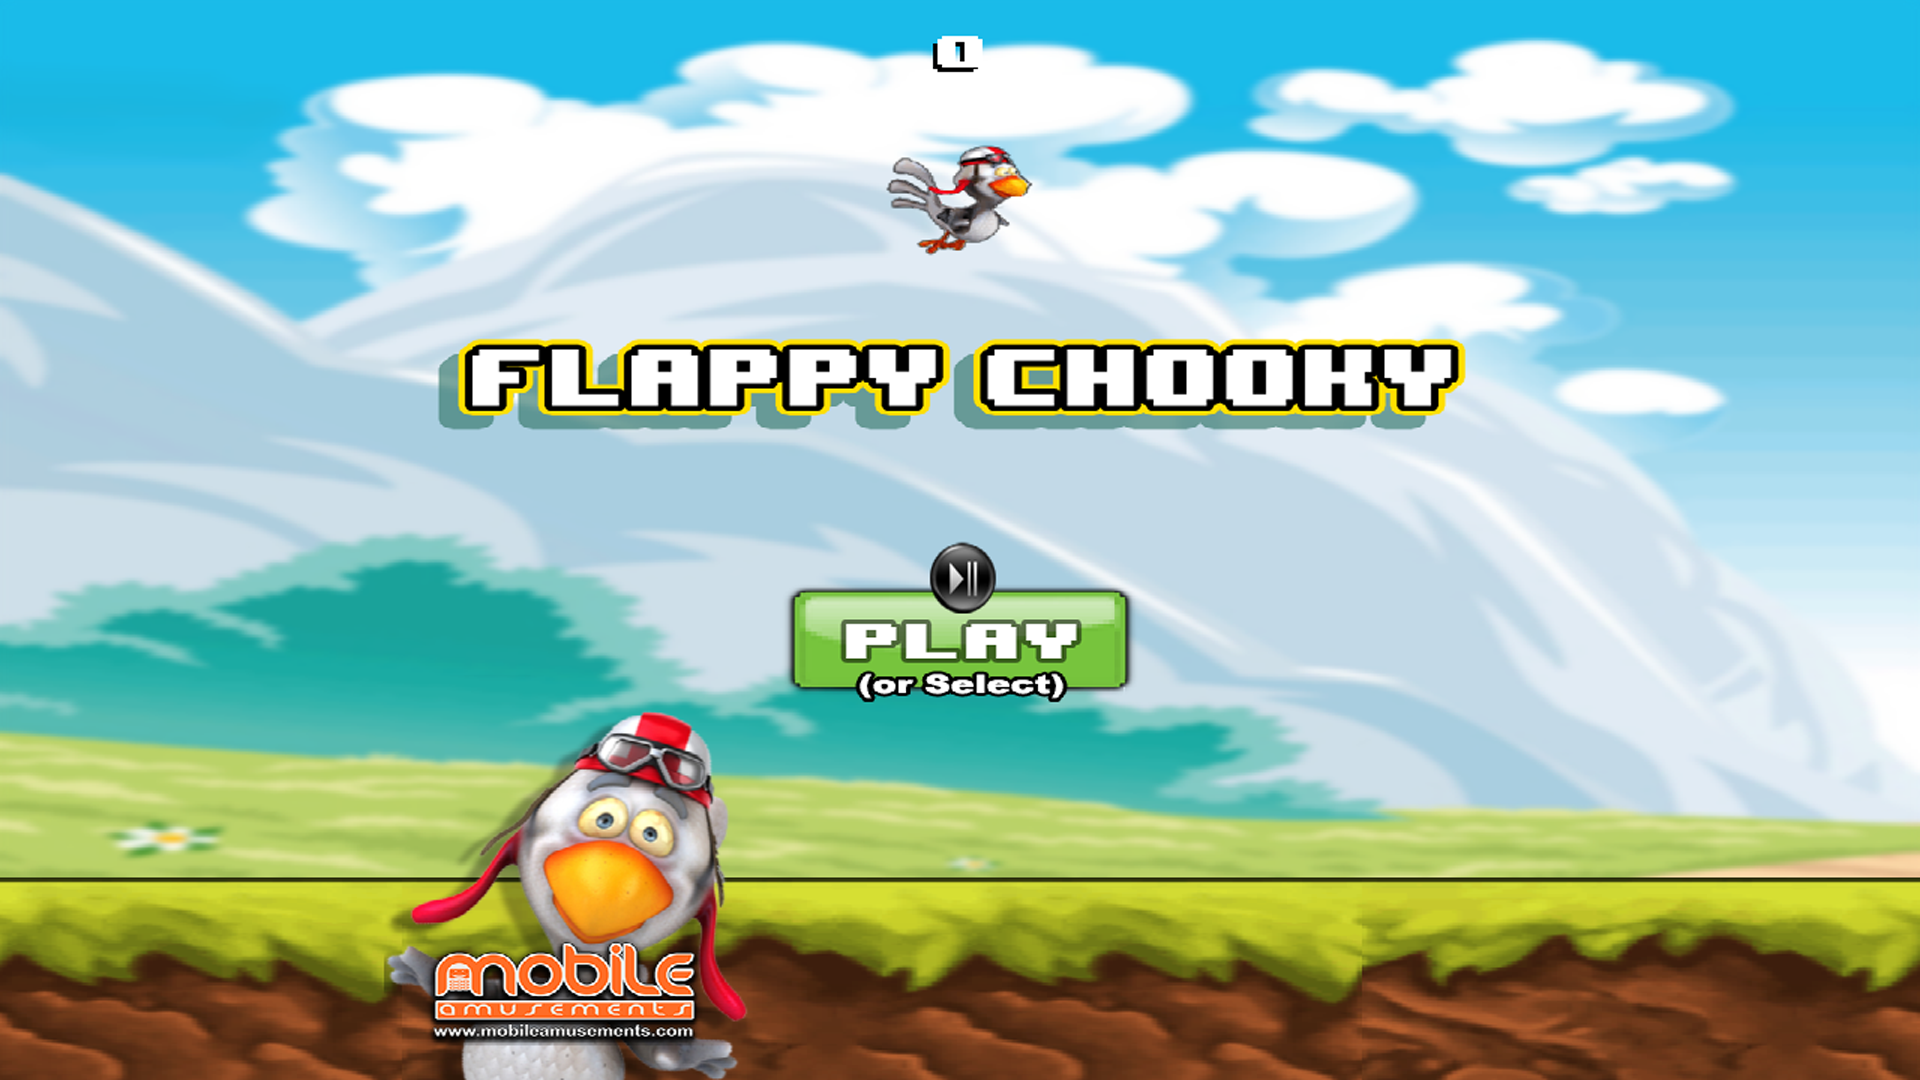 Flappy Chooky TV screenshot 1